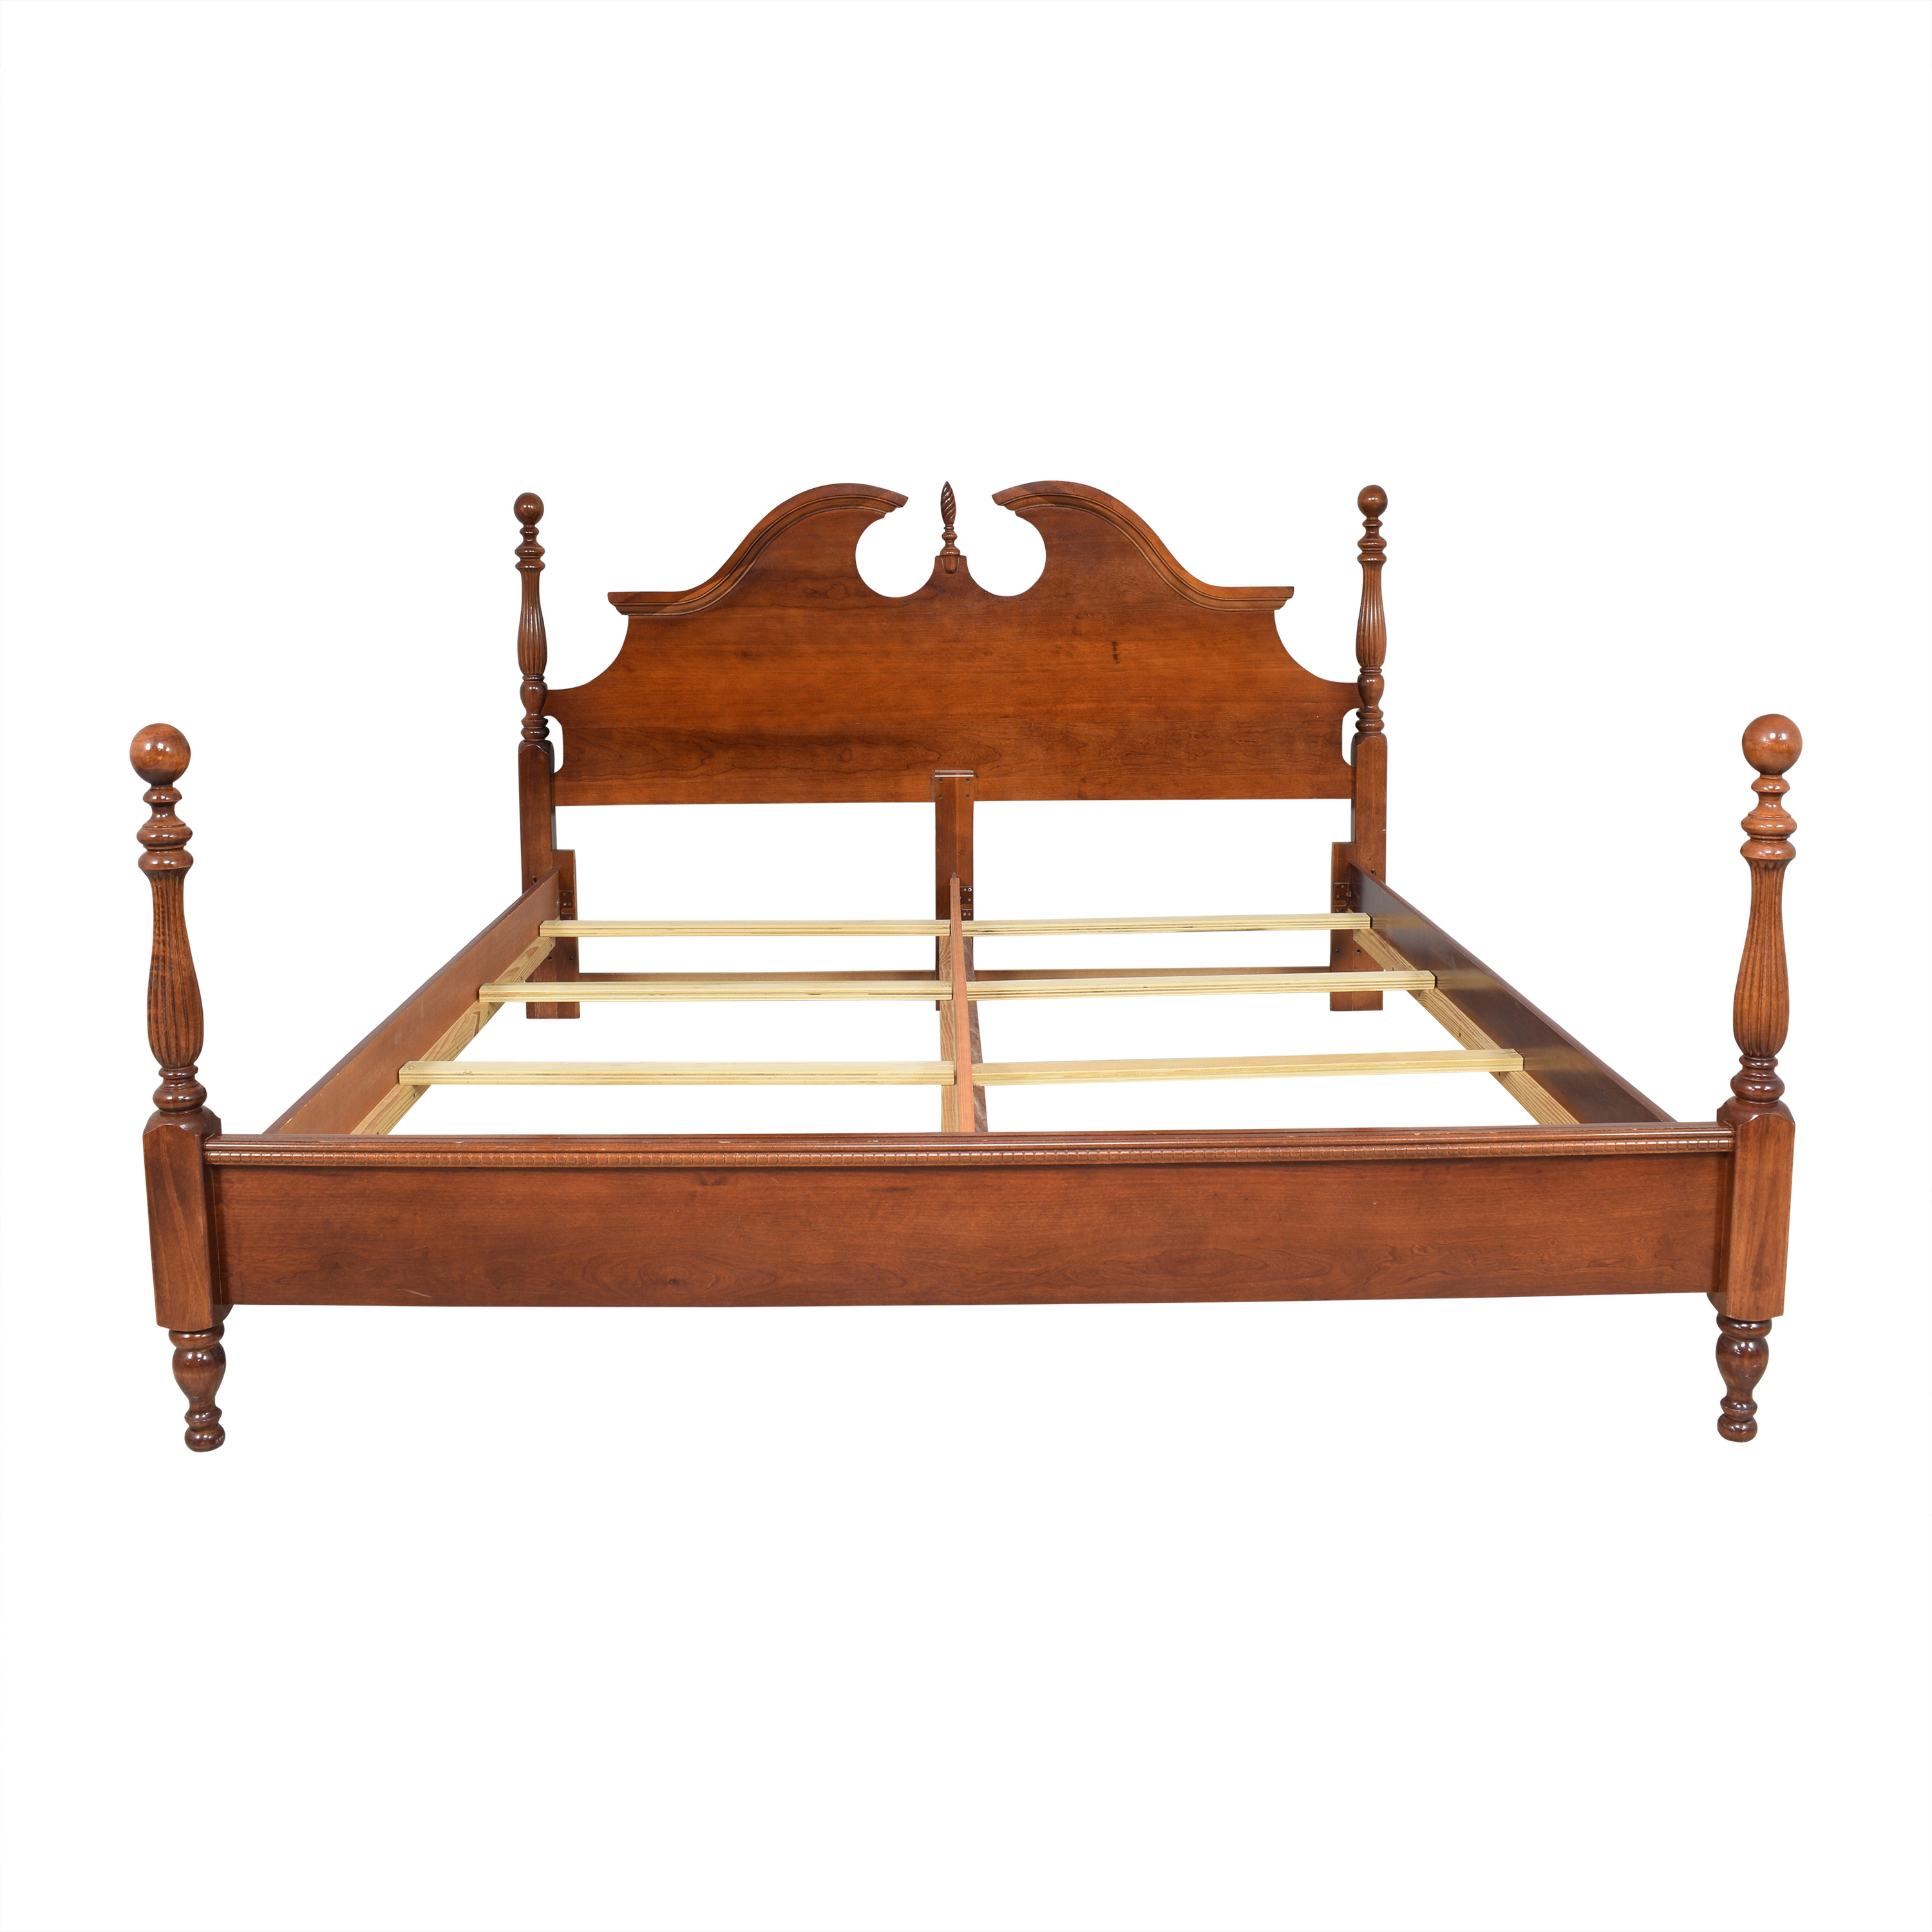 buy Raymour & Flanigan Four Poster California King Bed Raymour & Flanigan Beds